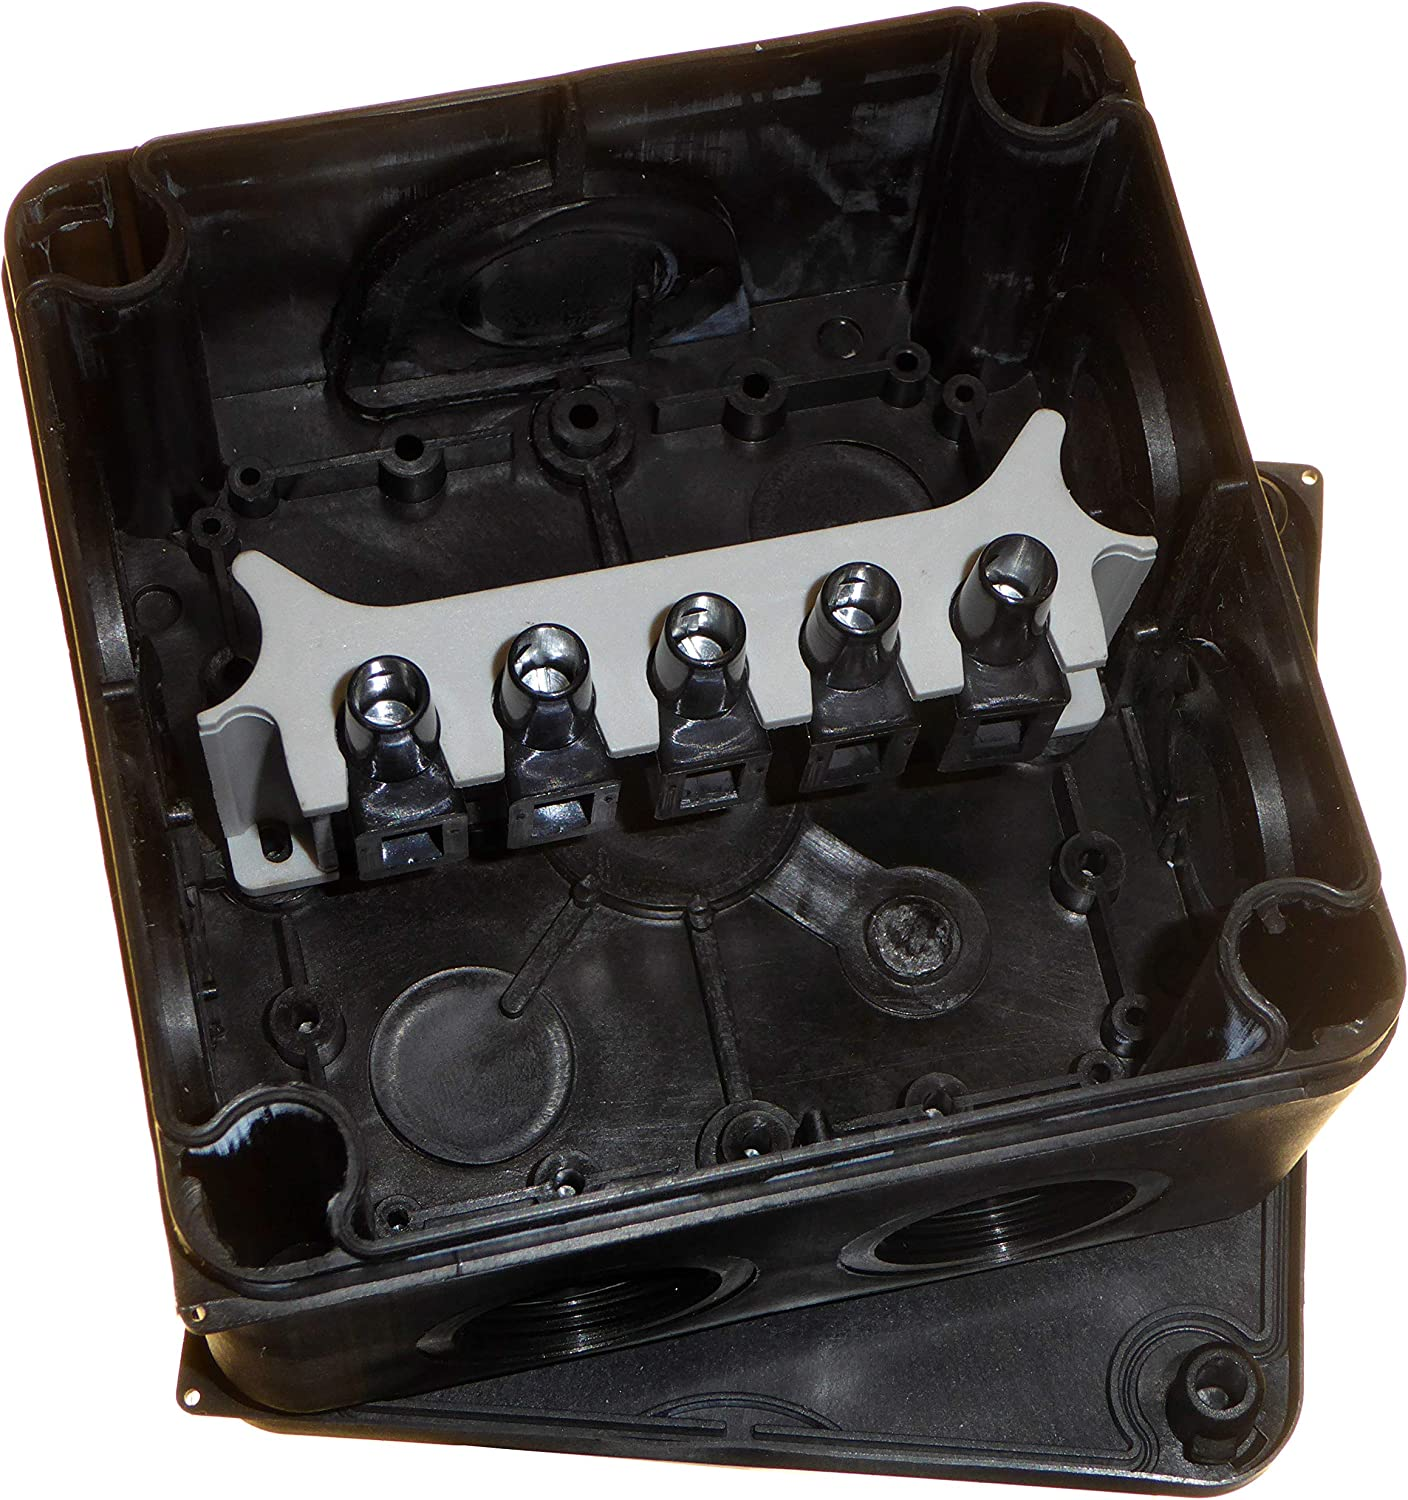 Waterproof Outdoor Junction Box IP66 Black 110mm with Soft Membrane Threaded Knockouts and 5 Way Connector Block 2pk